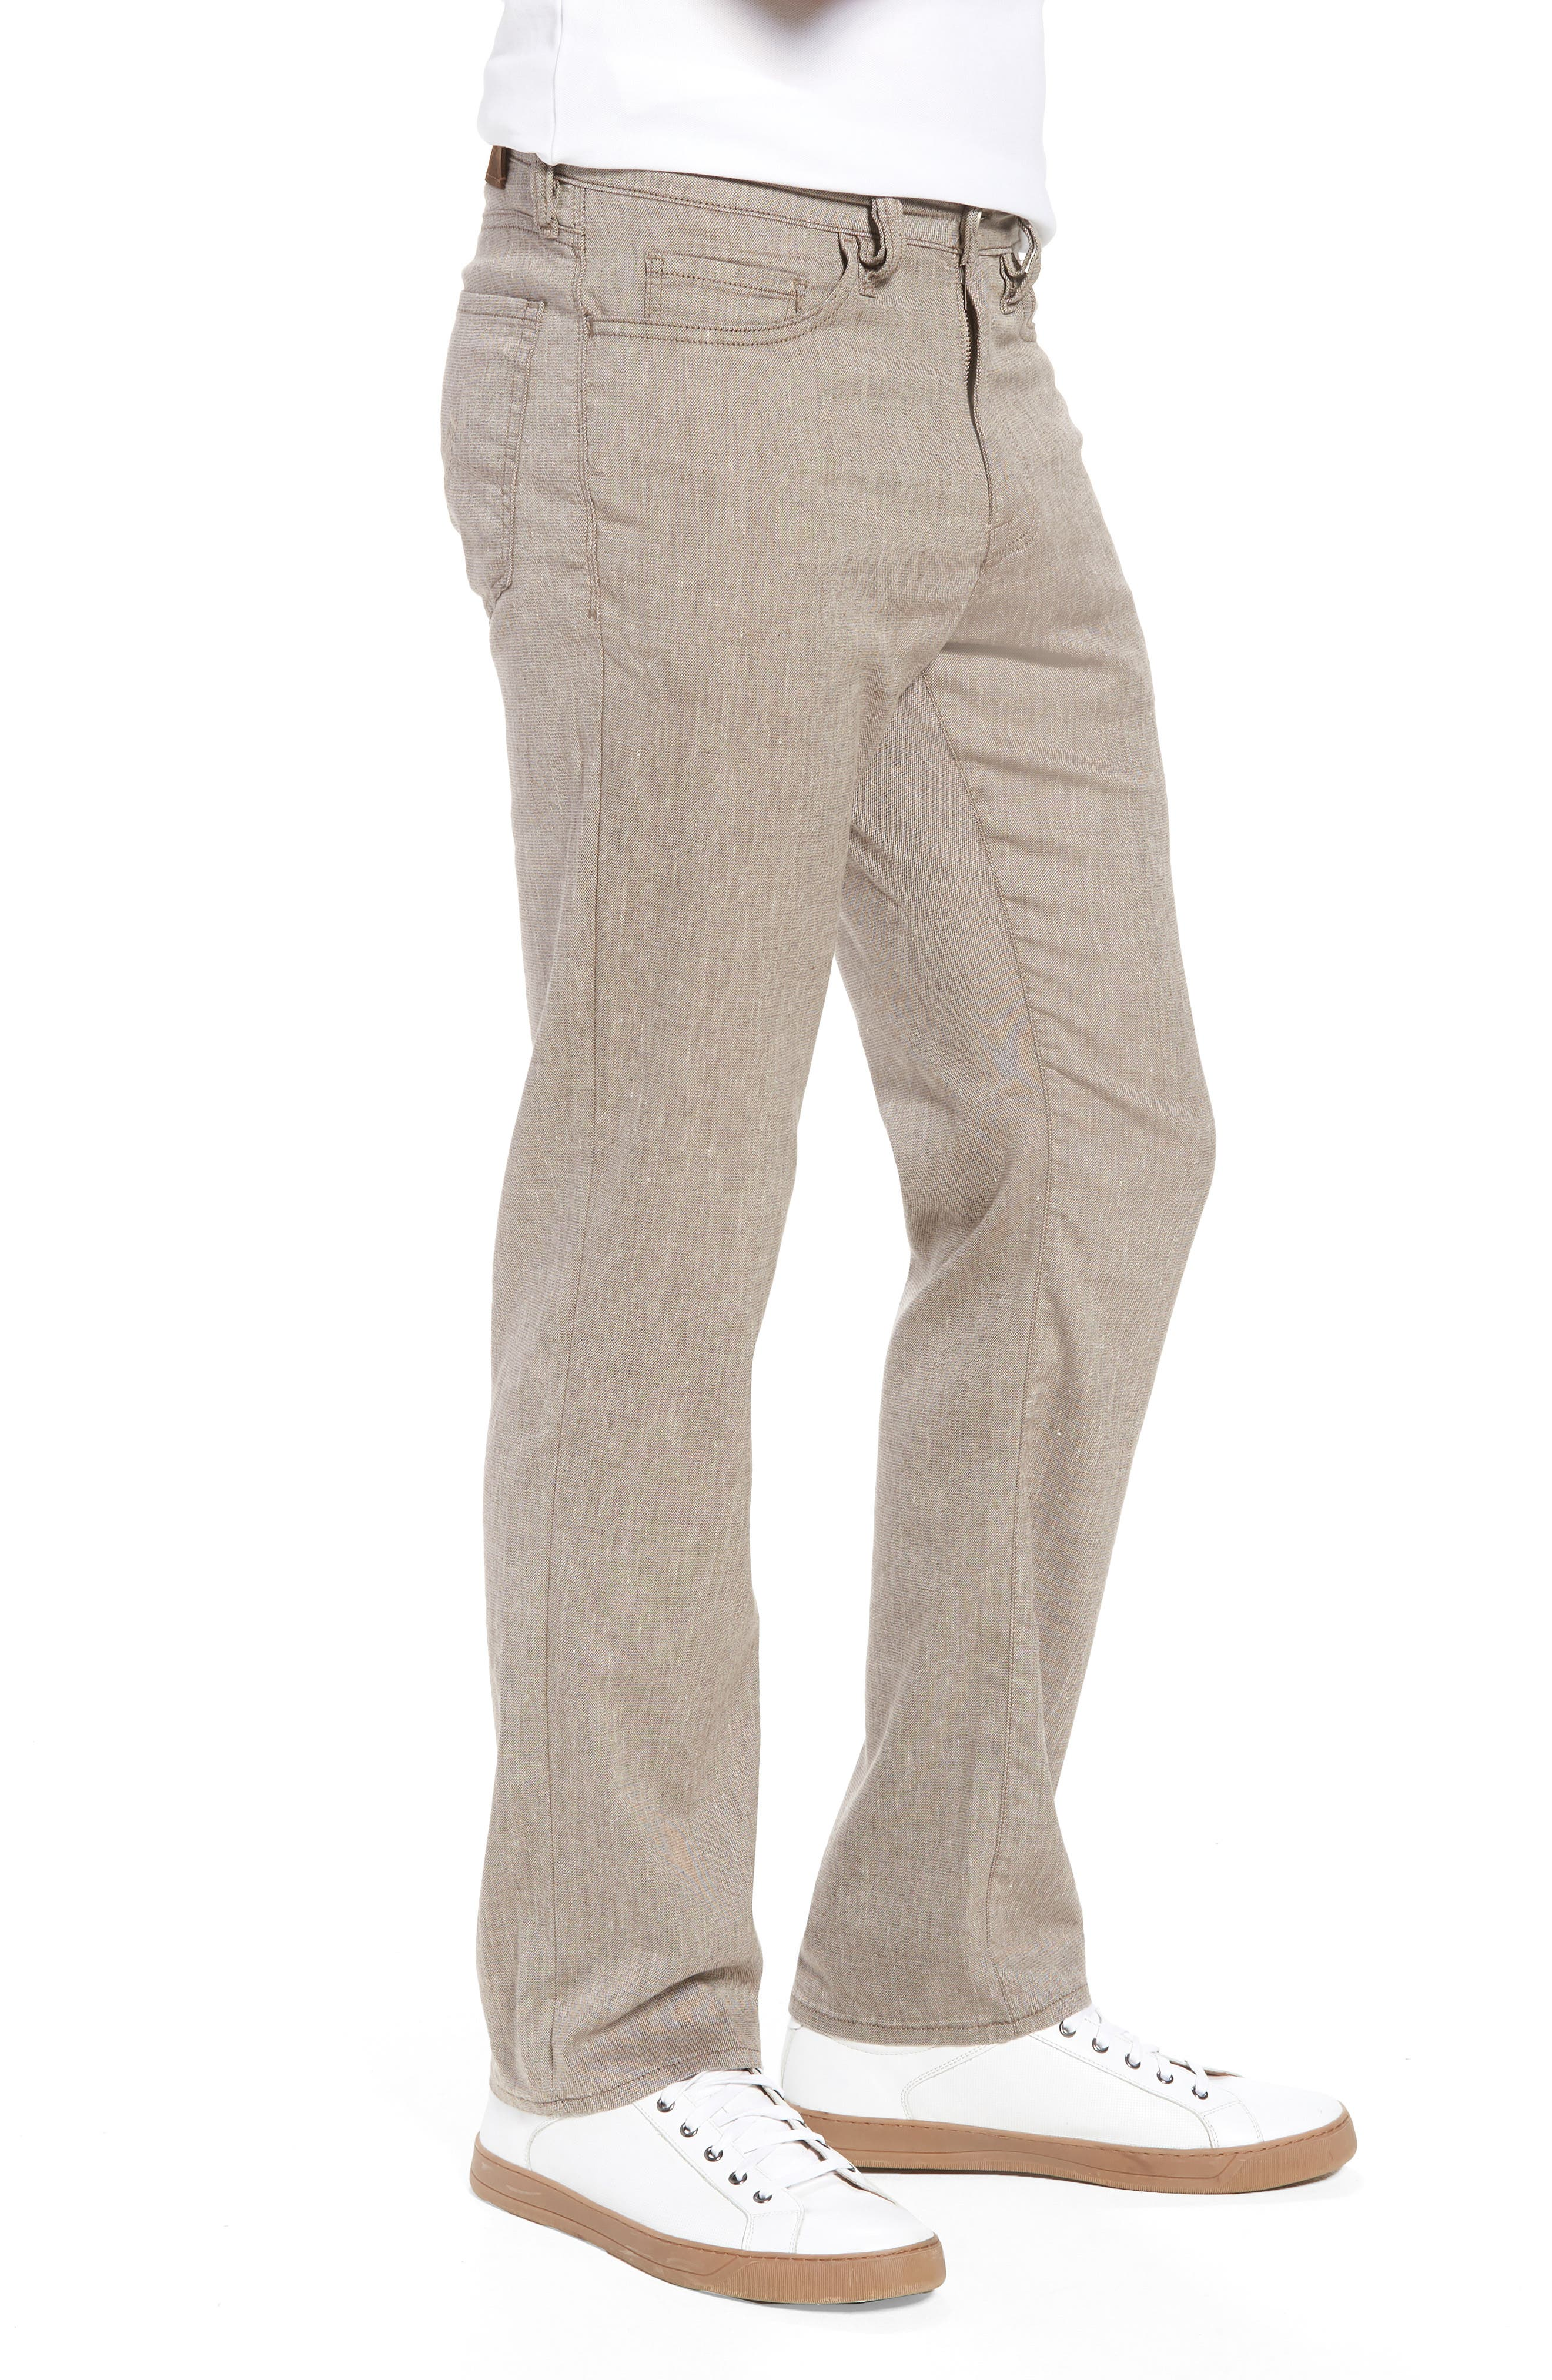 Charisma Relaxed Fit Pants,                             Alternate thumbnail 3, color,                             Latte Textured